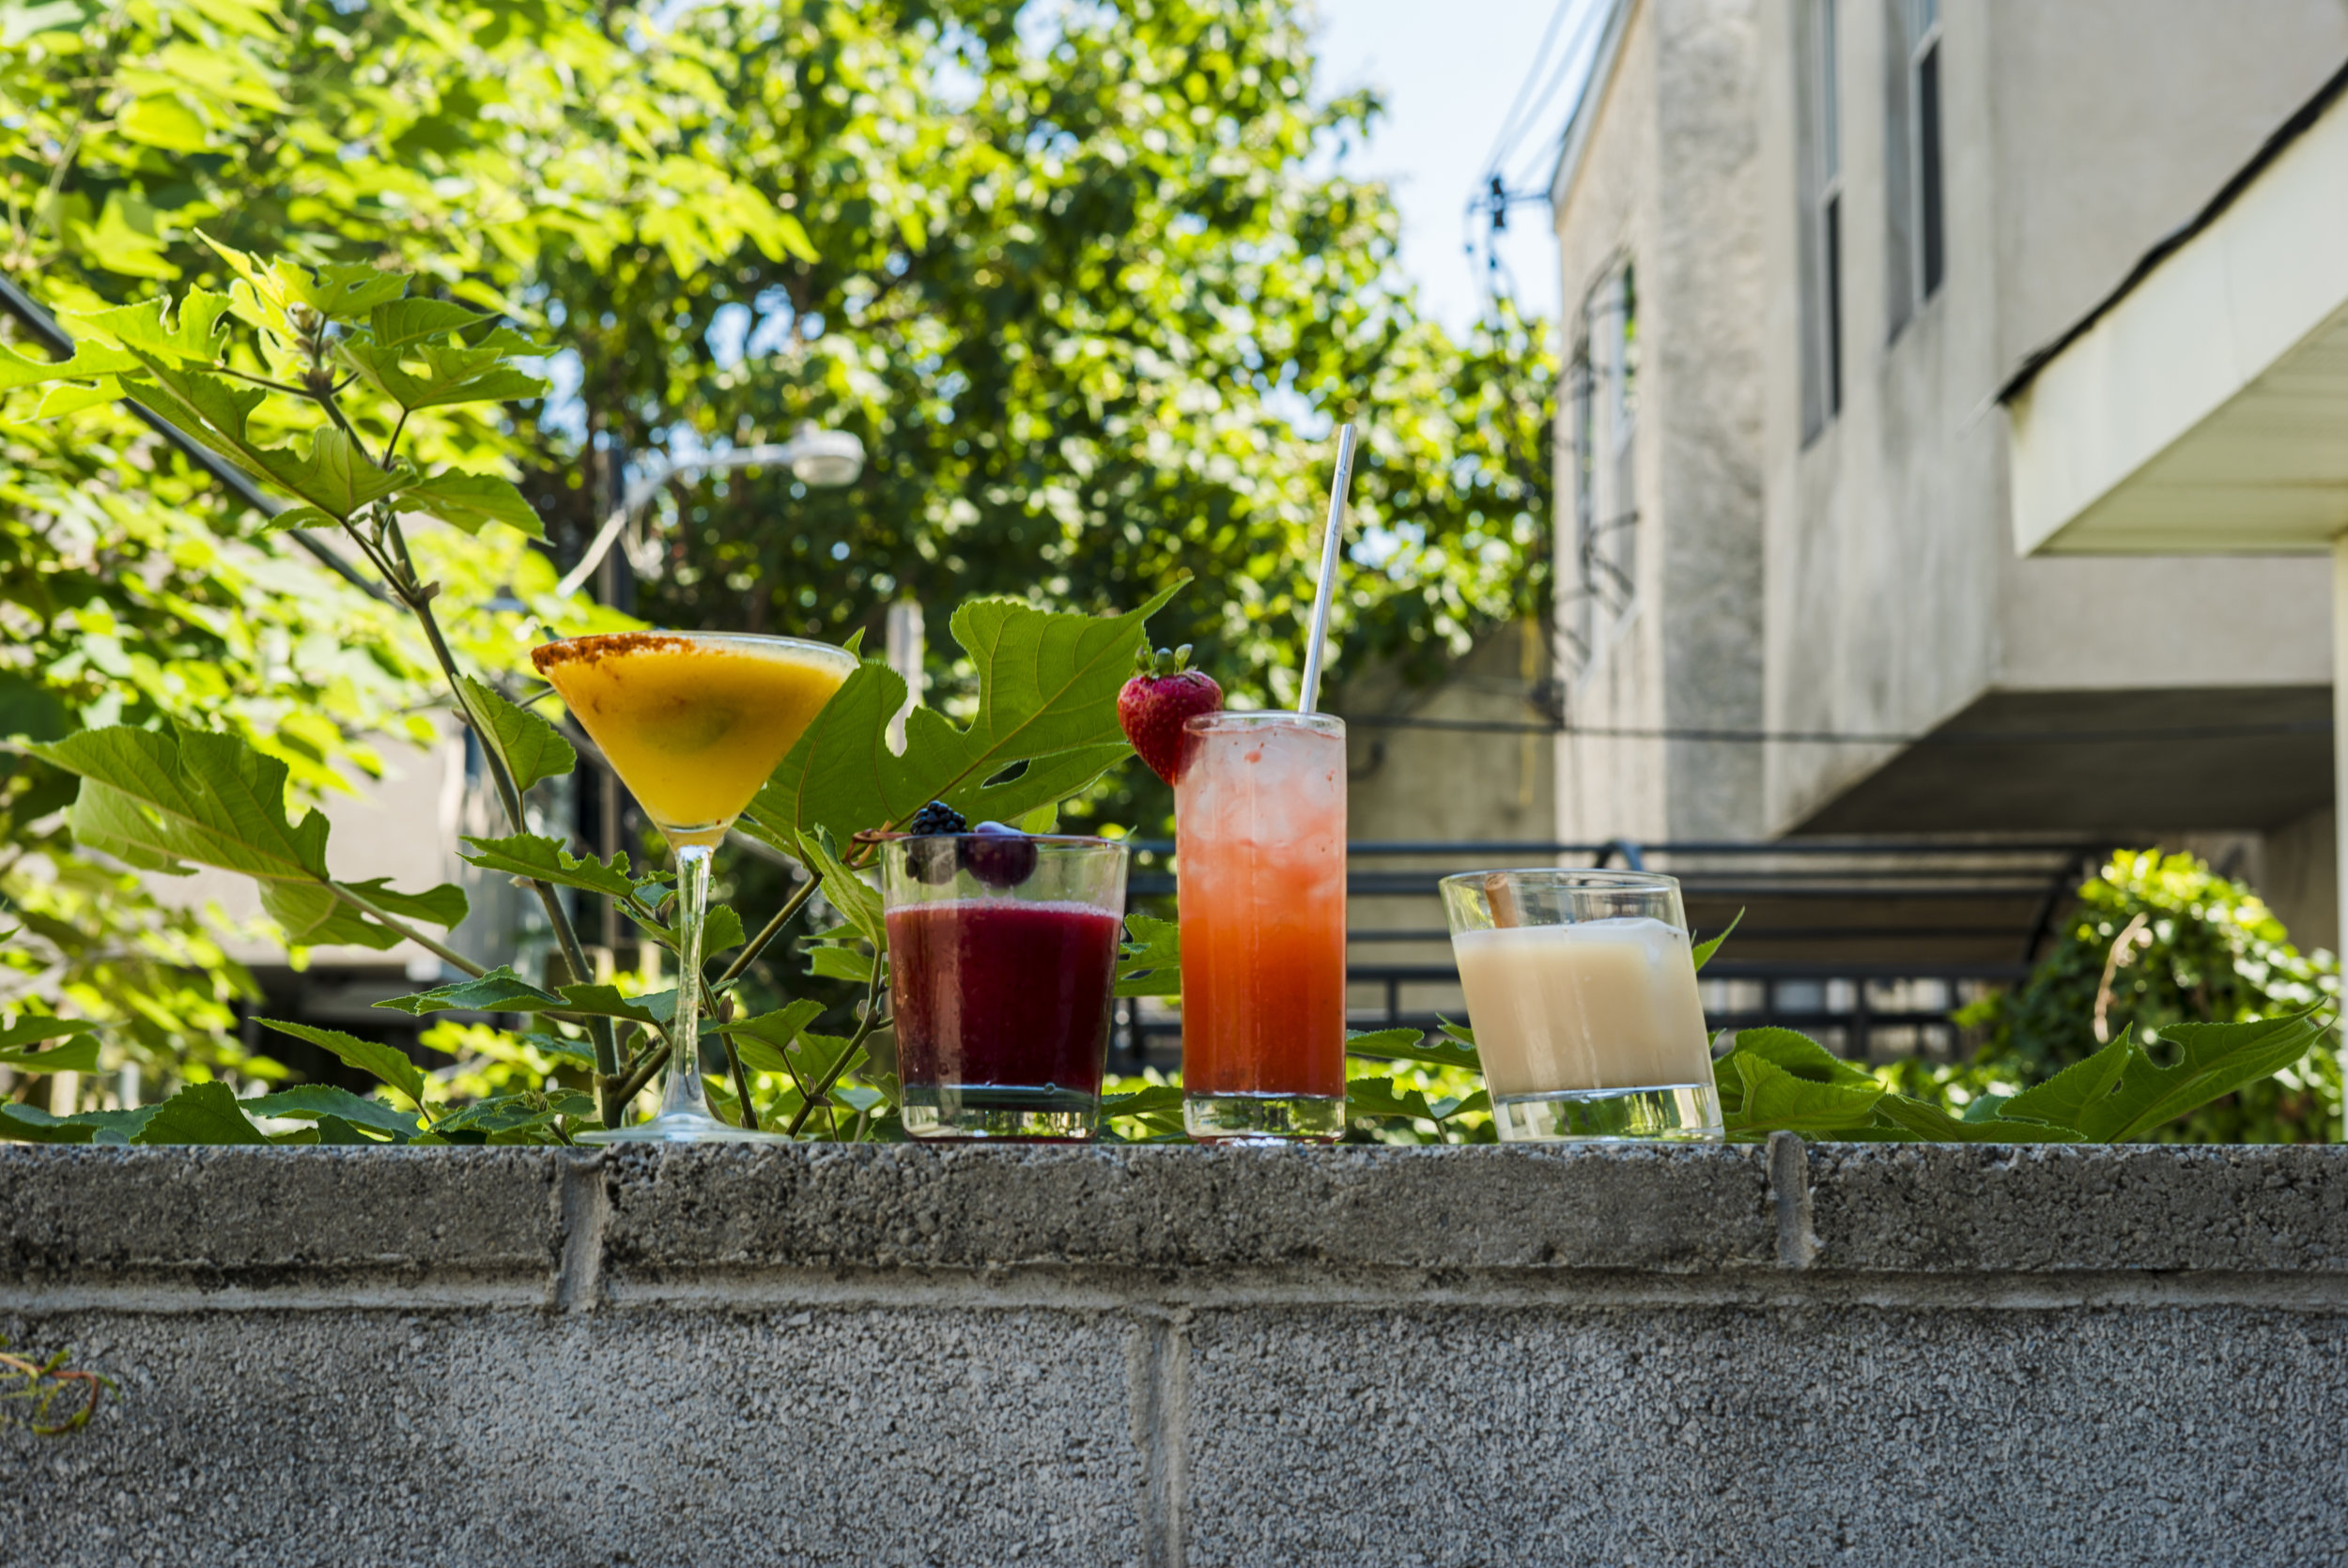 Cocktails and Dreams_0005_DSC09149.jpg